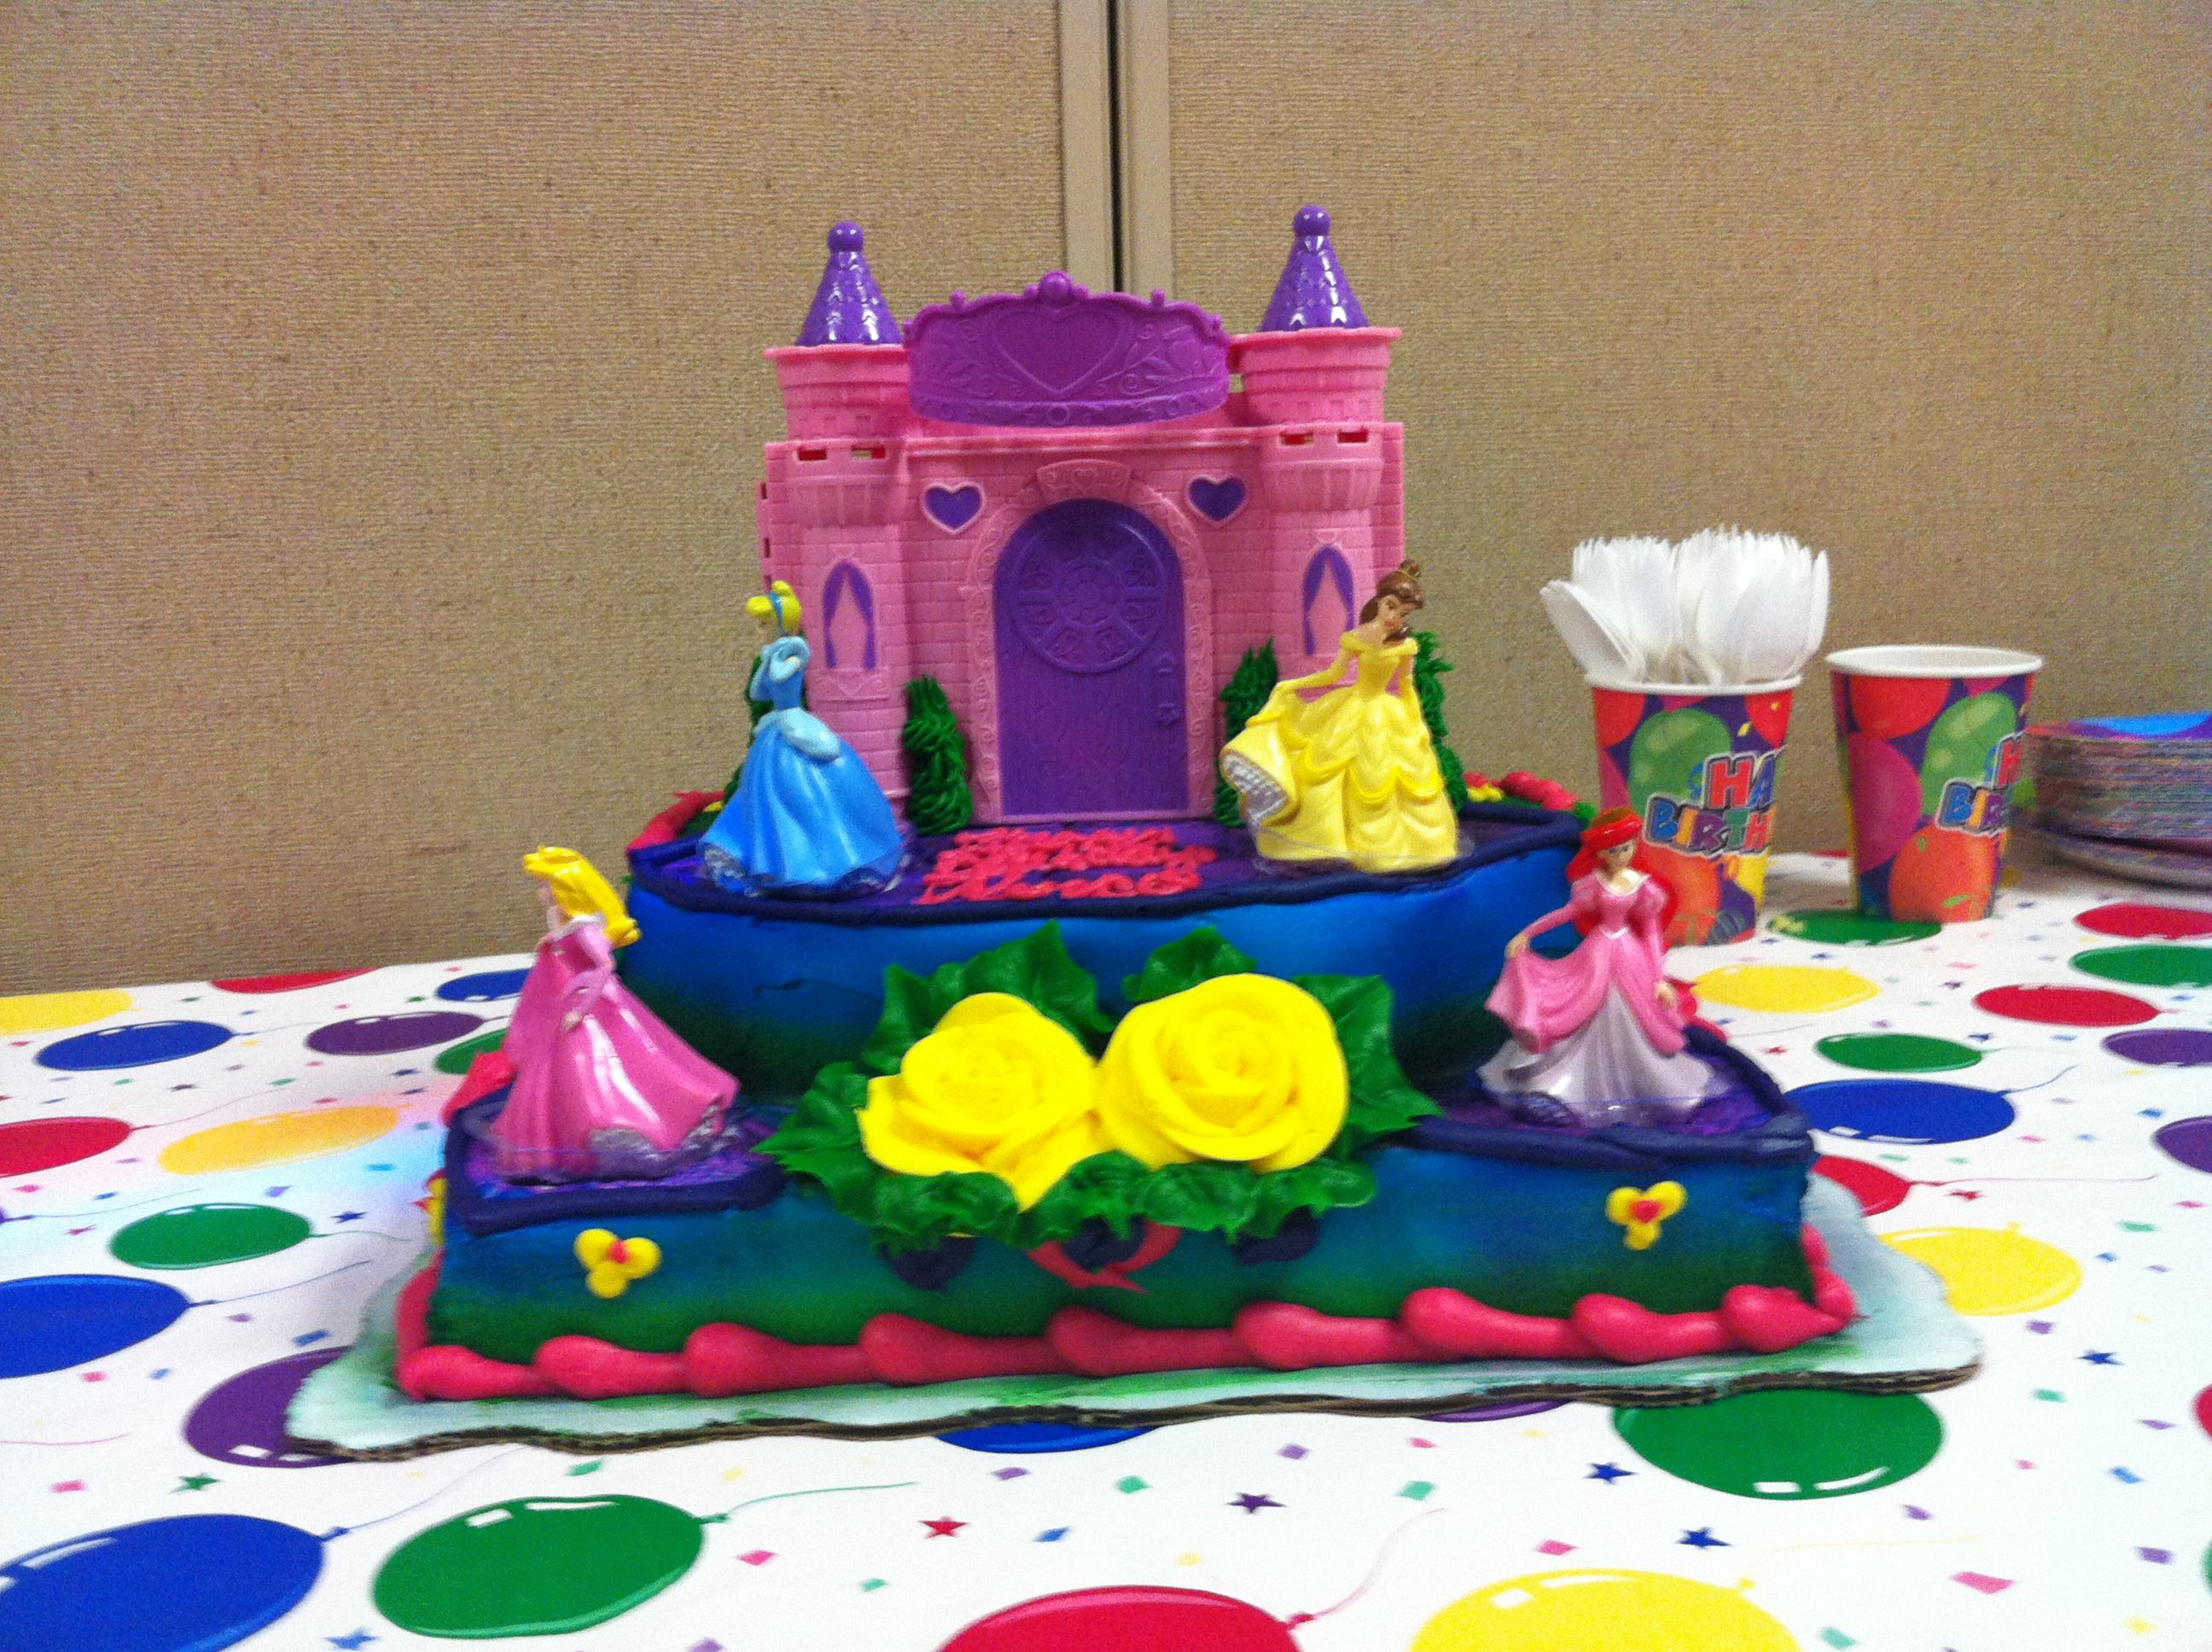 This Disney Princess Birthday Cake Is Stunning SaharaSams